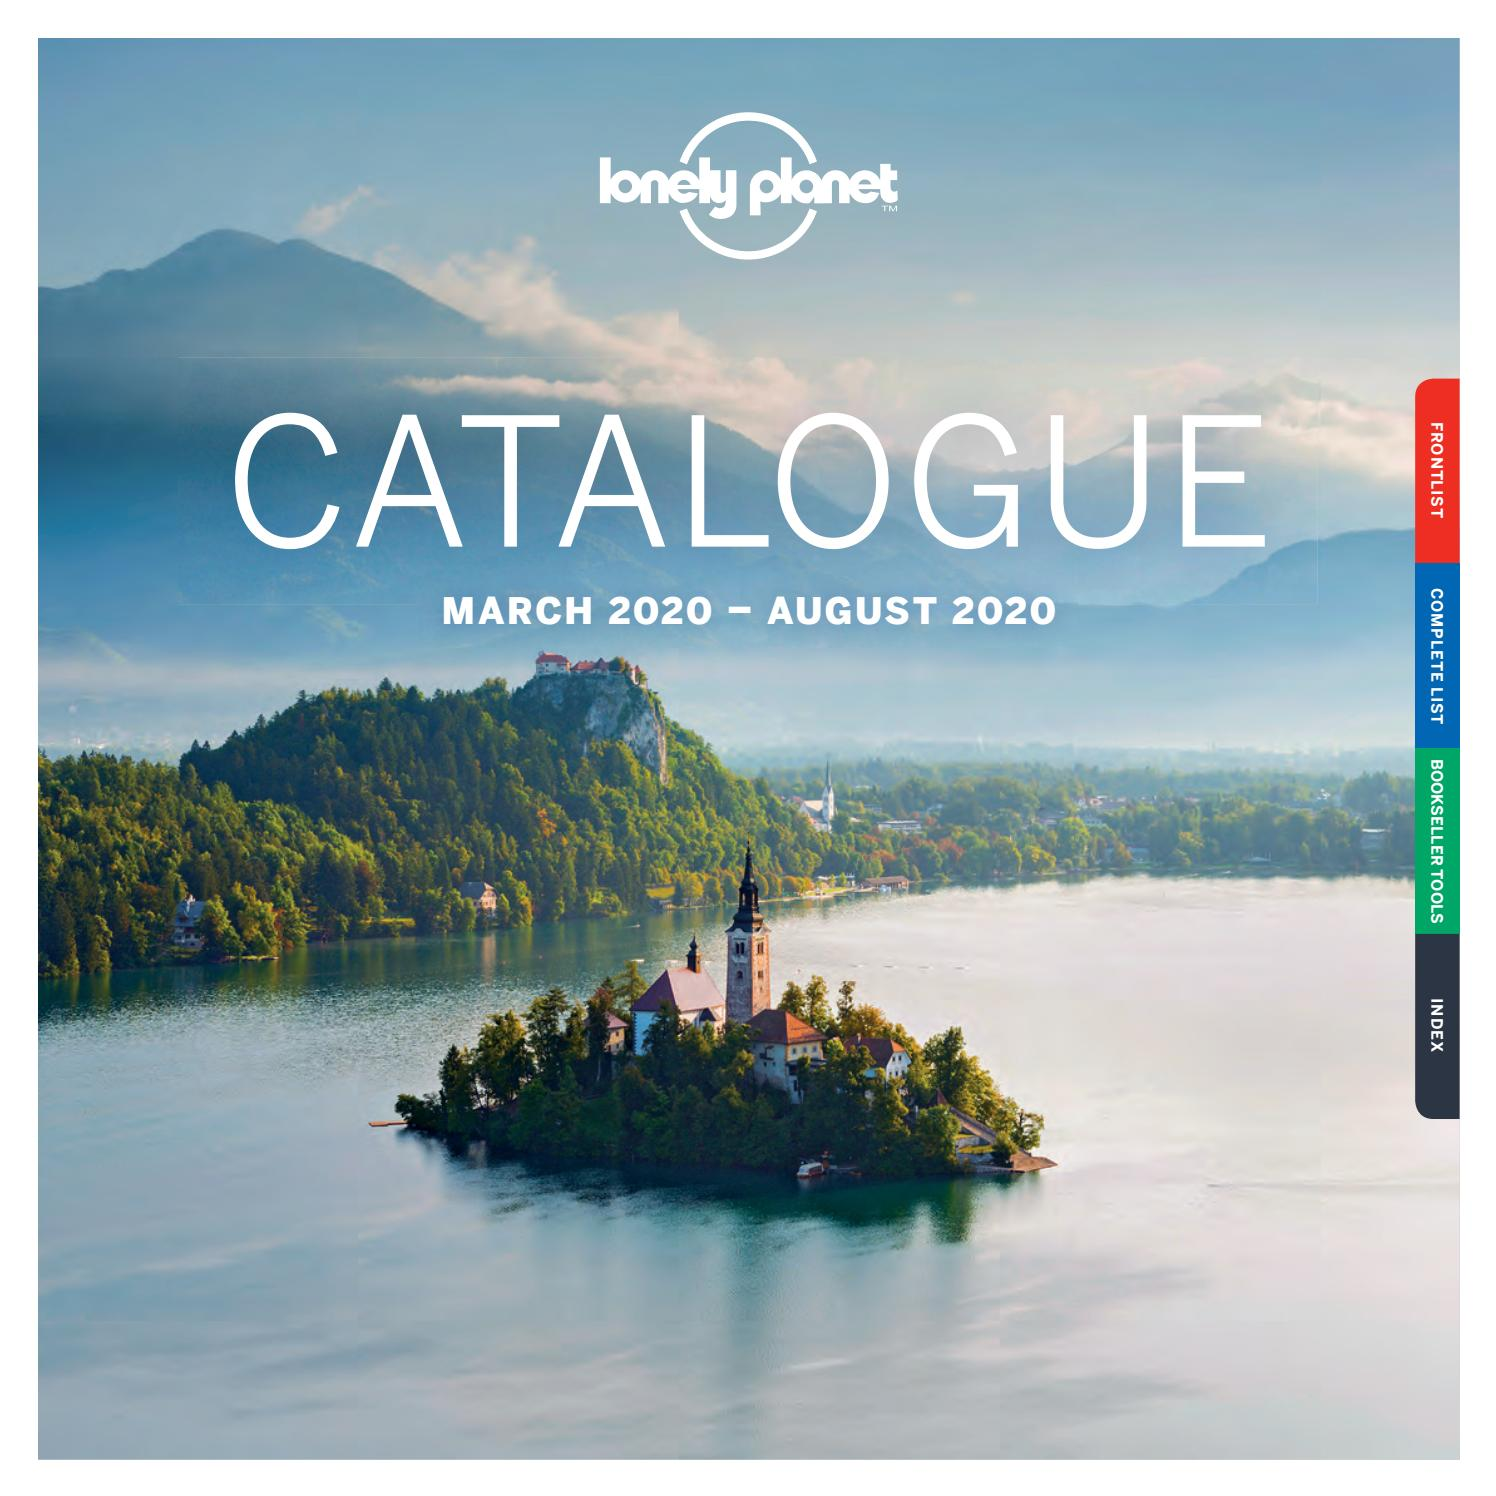 Lonely Planet Catalogue March 2020 - August 2020 - UK/EMEA by Lonely Planet  Marketing - issuu